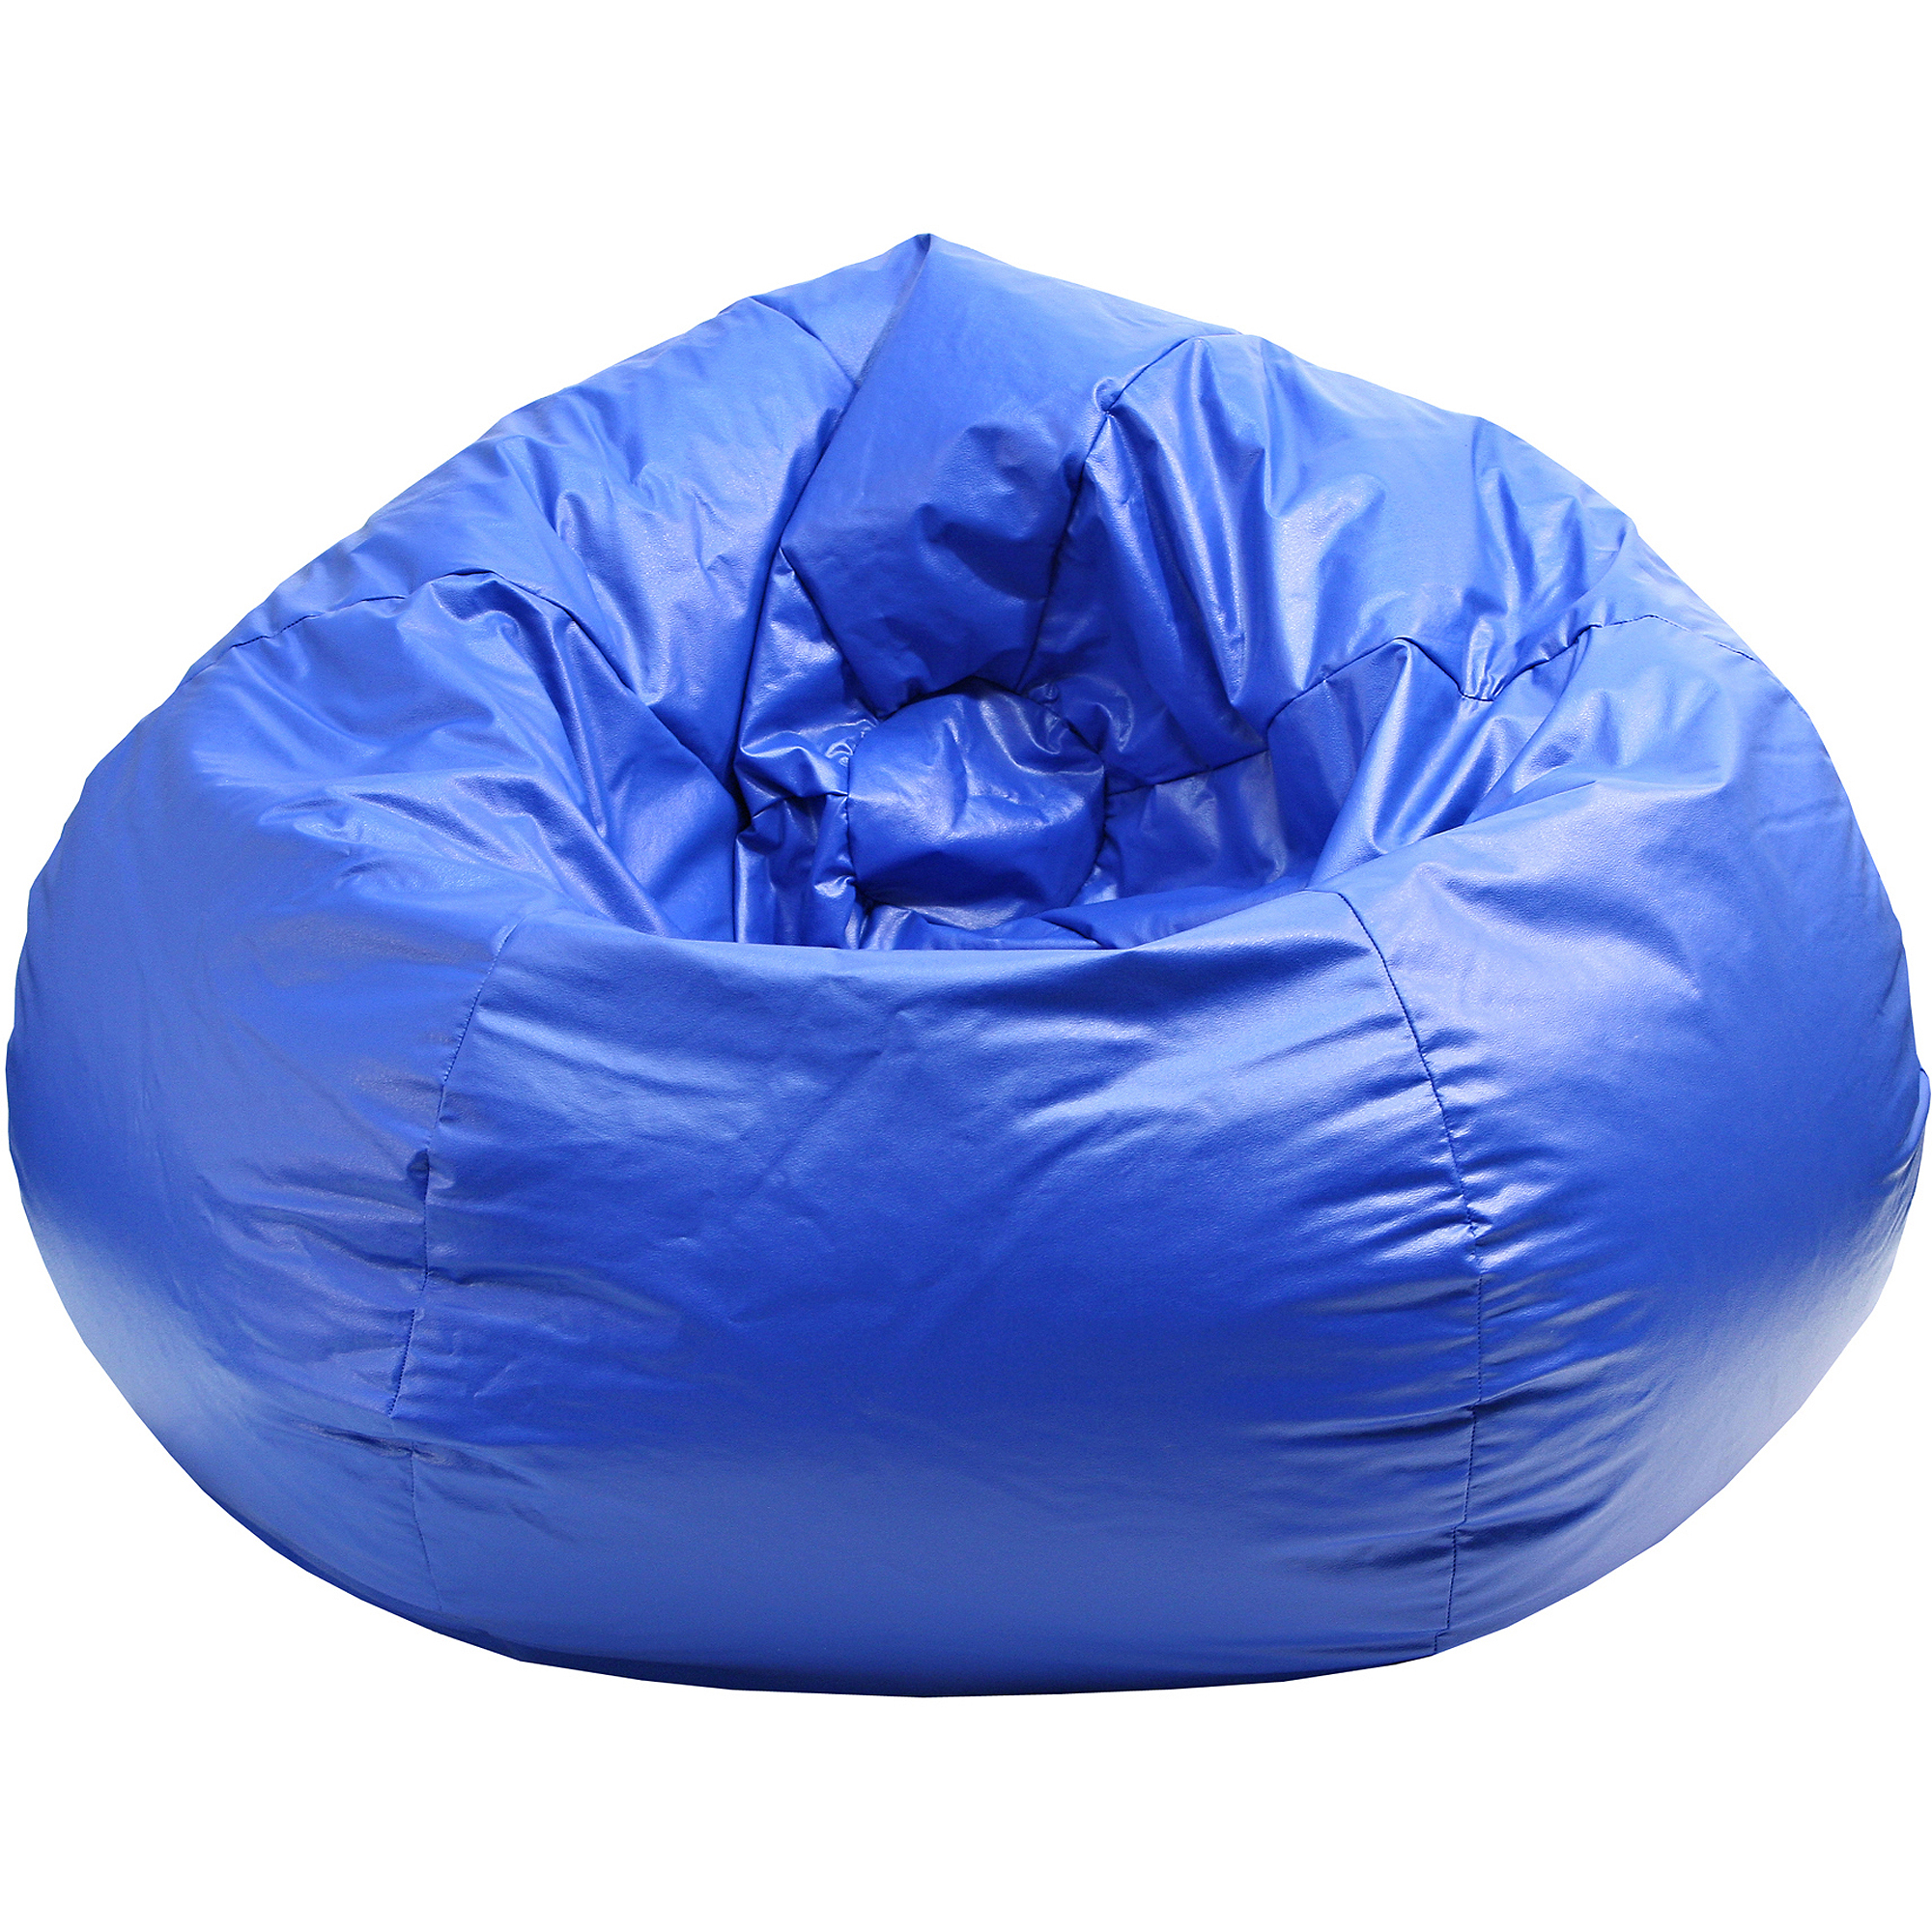 Medium/Tween Wet Look Vinyl Bean Bag